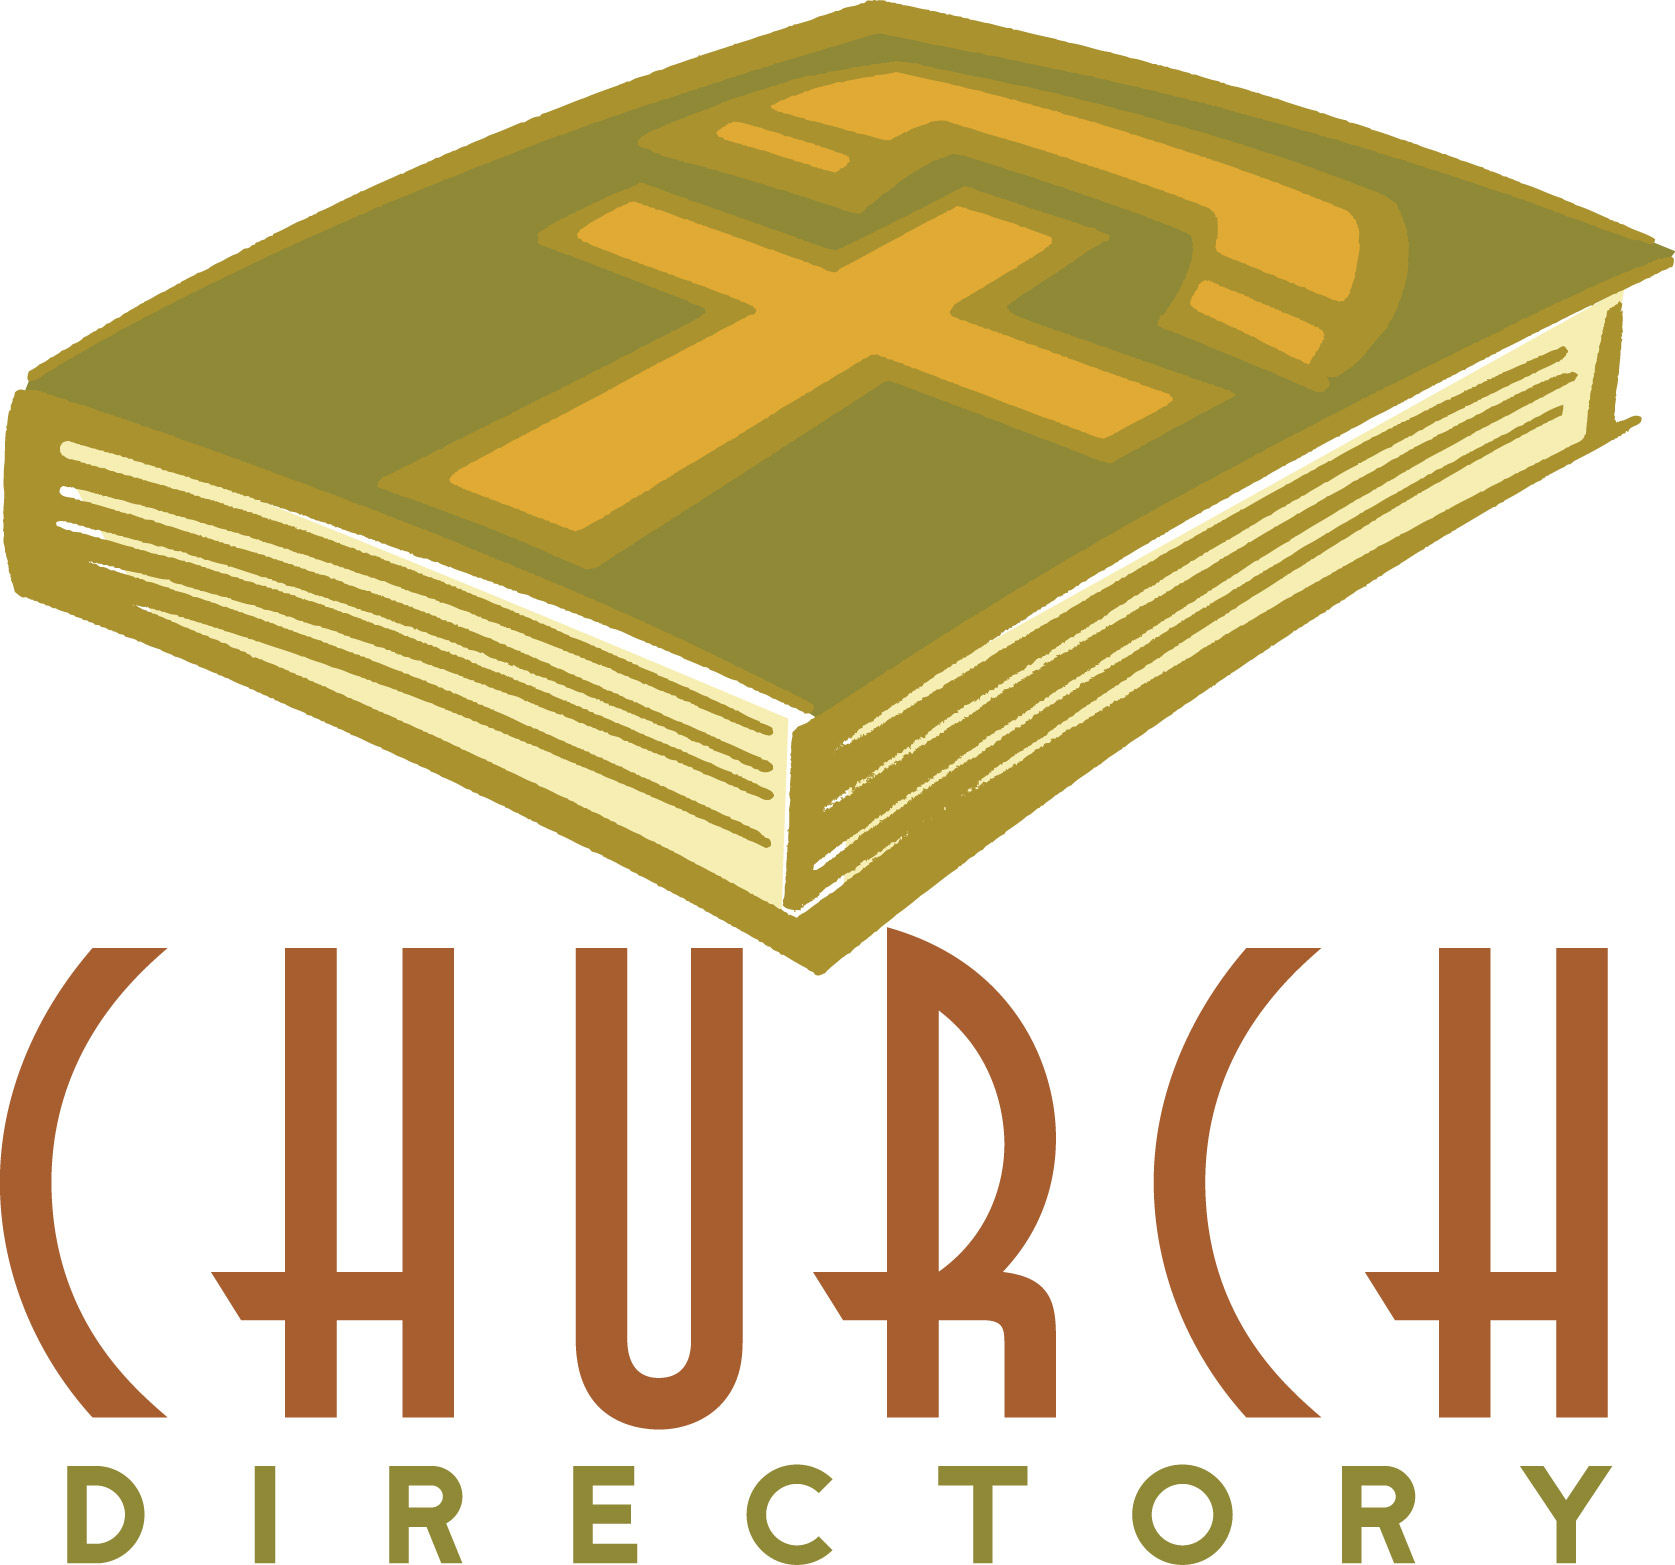 Clipart telephone directory library Clip Art Church Phone Directory free image library